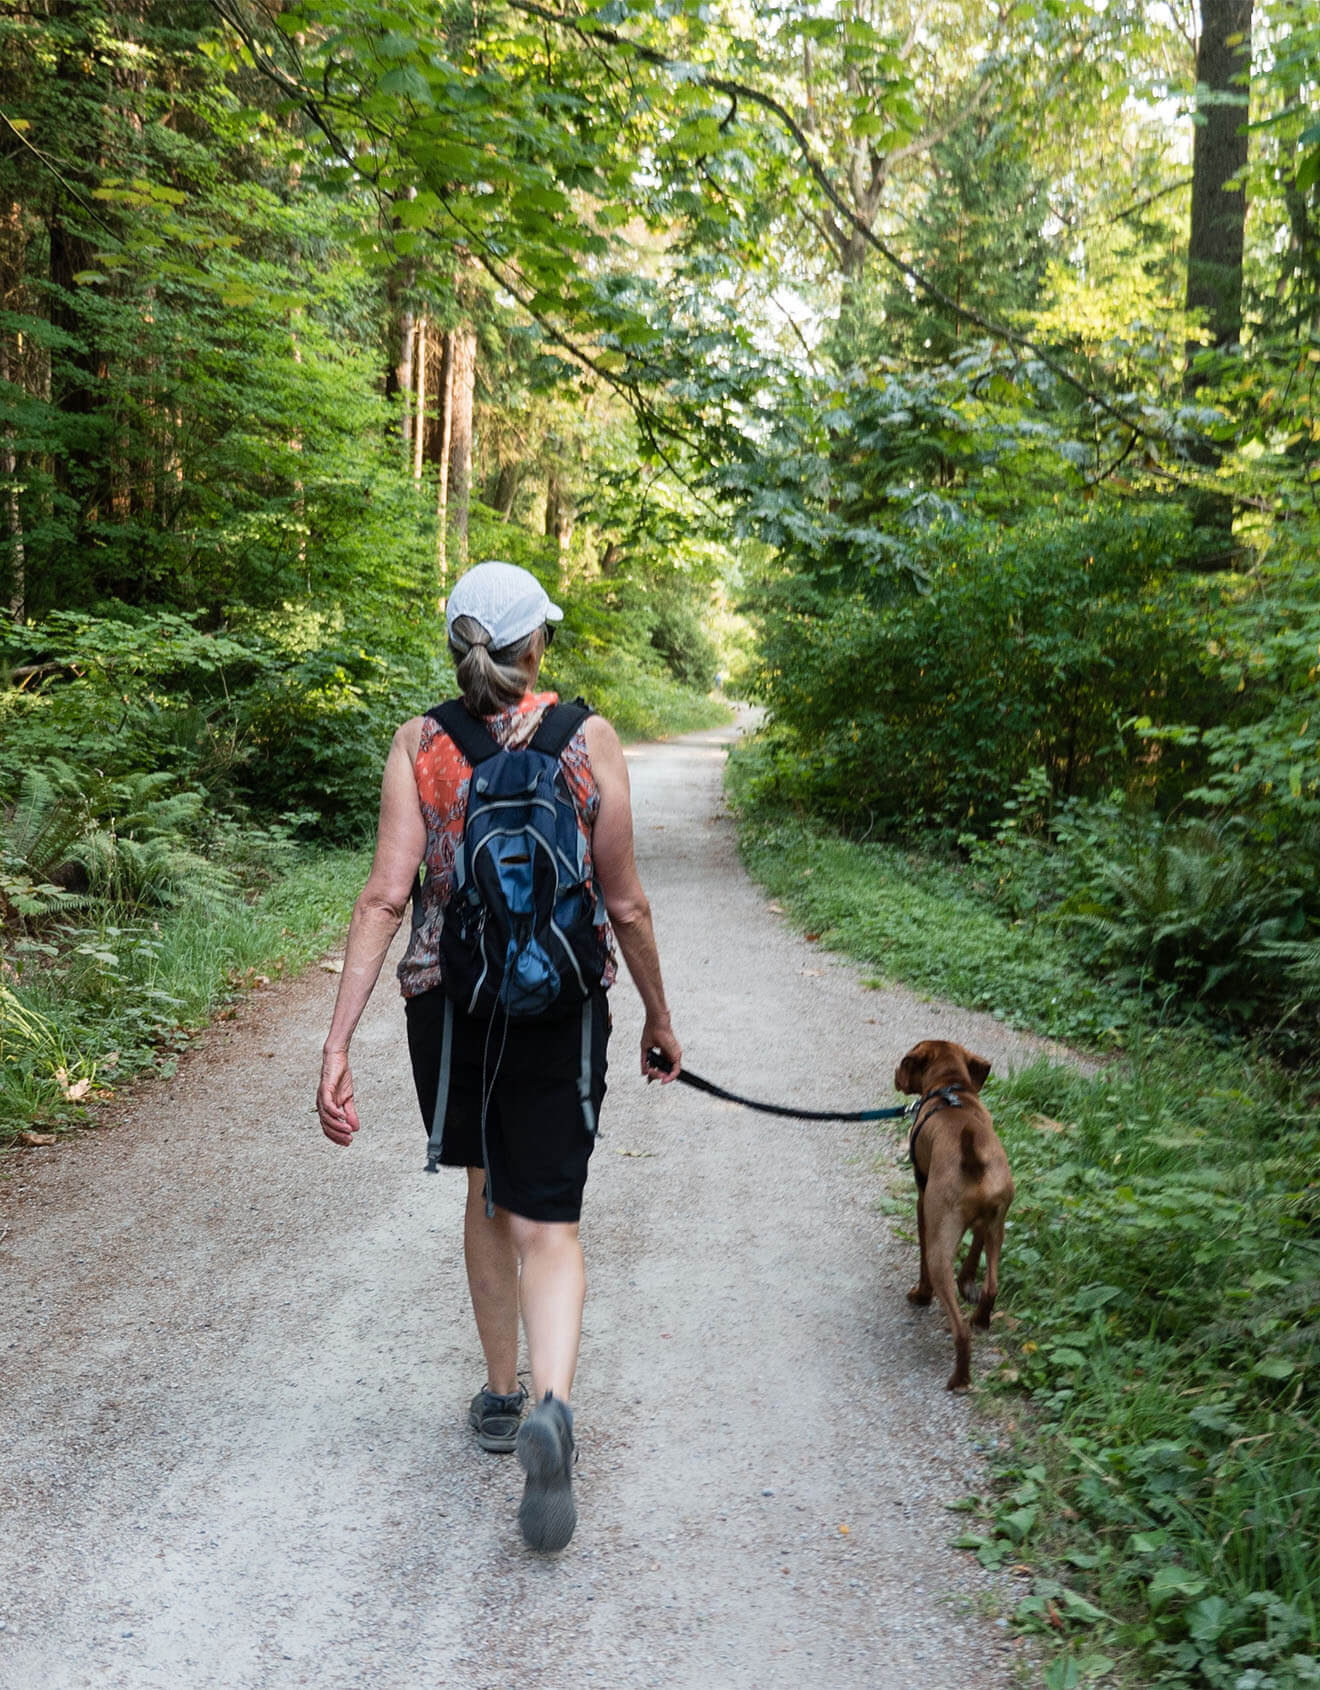 Spending time outdoors and active can help improve mental health